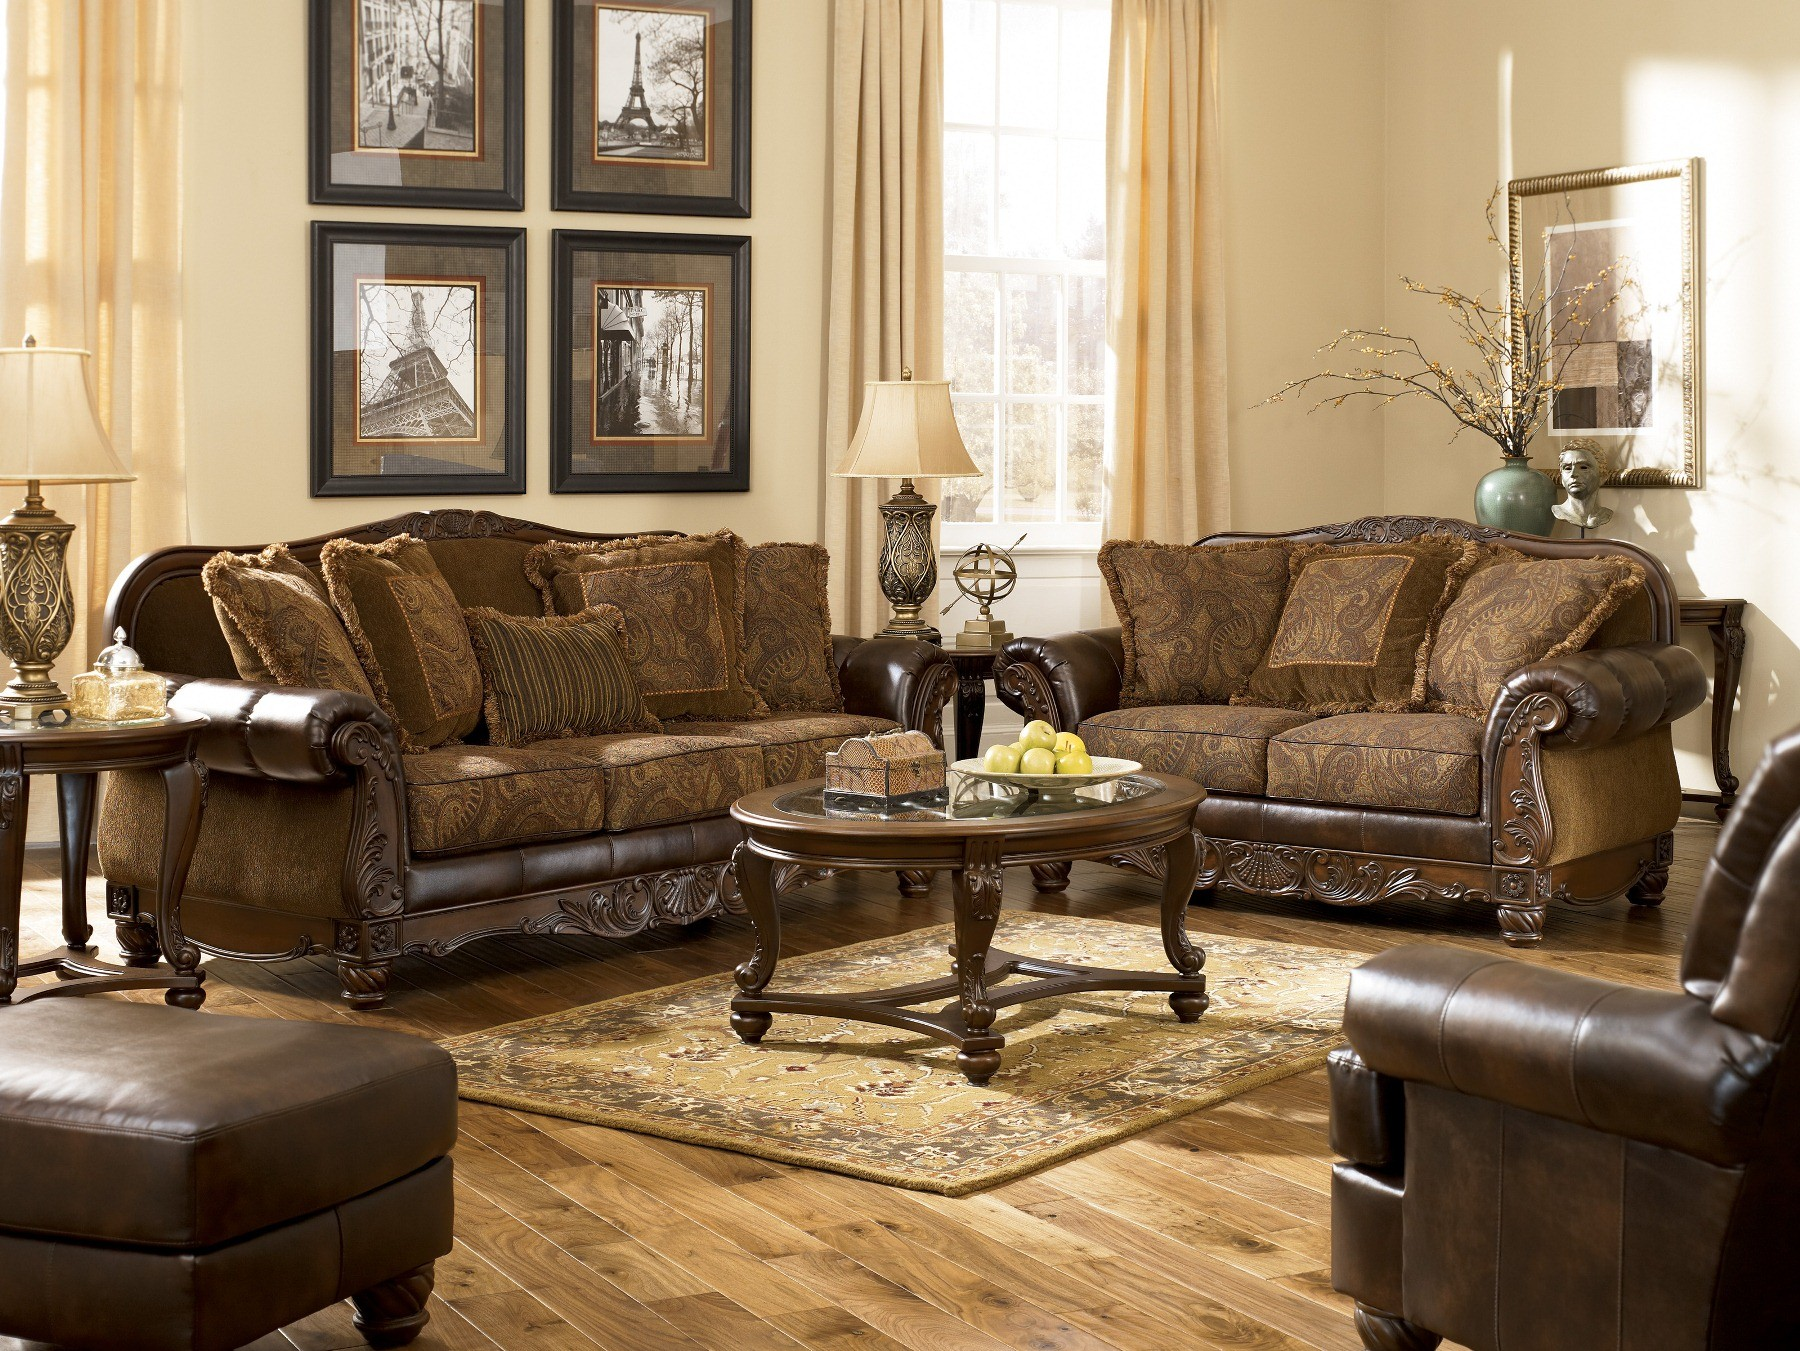 vintage living room sets ideas gray and yellow signature design by ashley fresco durablend antique sofa media gallery 1